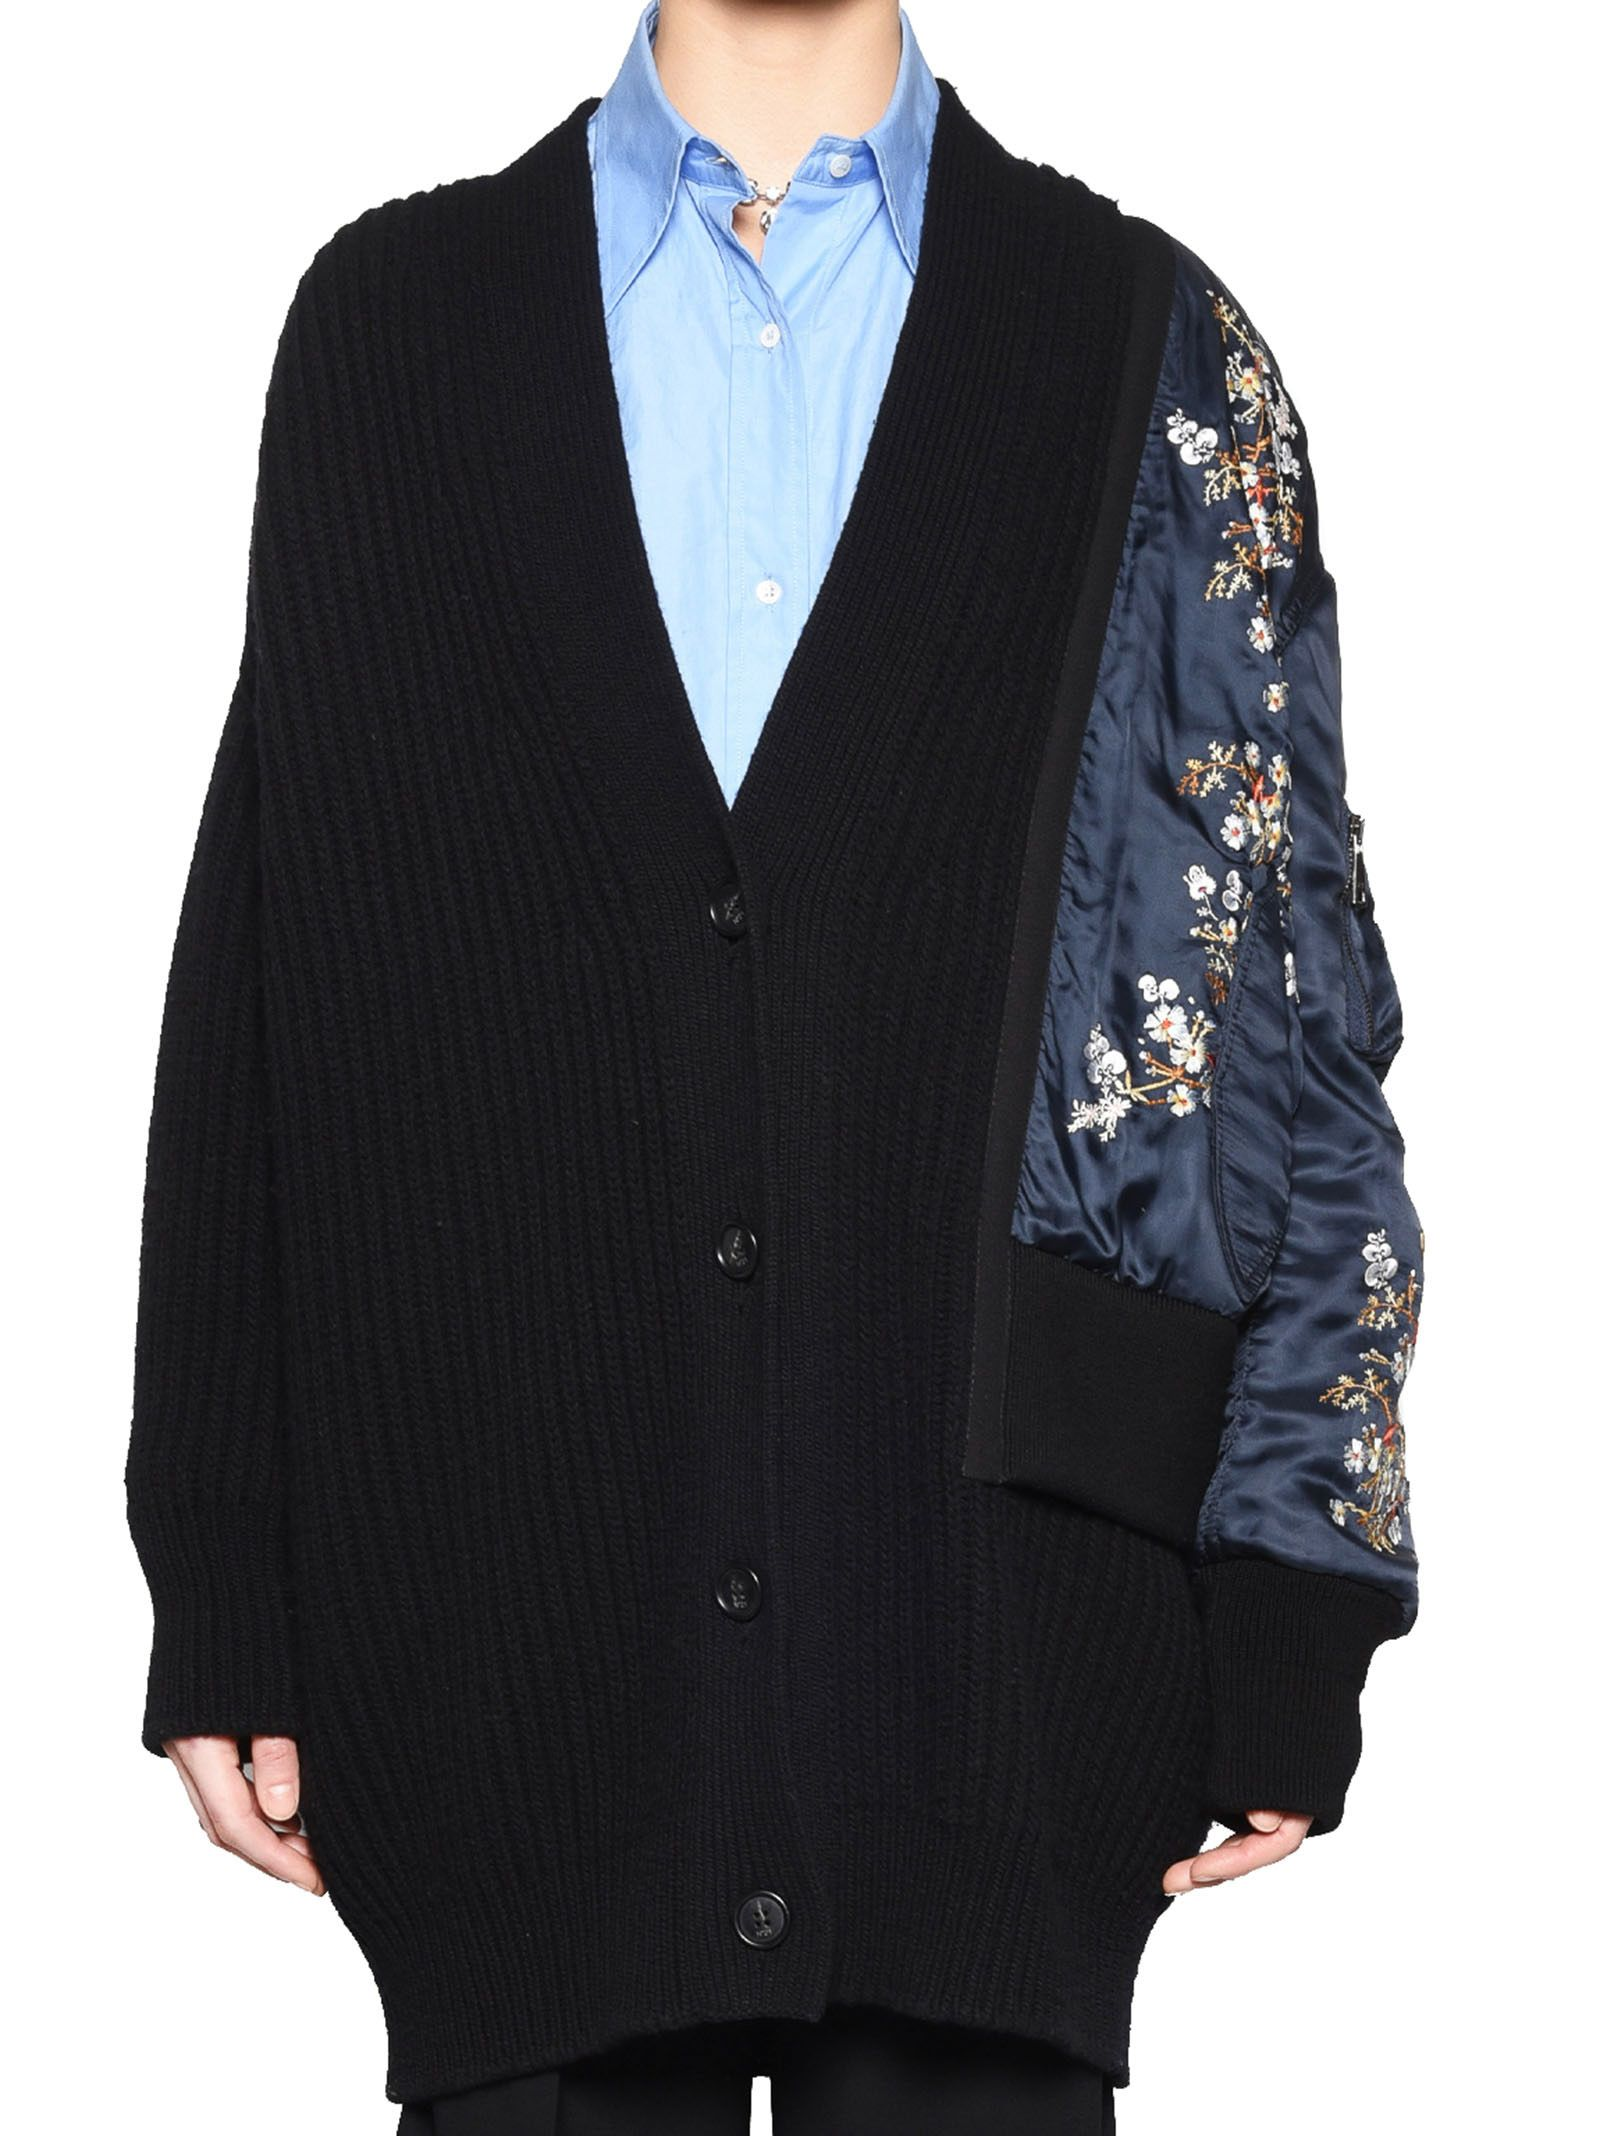 N°21 No21 Embroidered Arm Ribbed Cardigan in Black